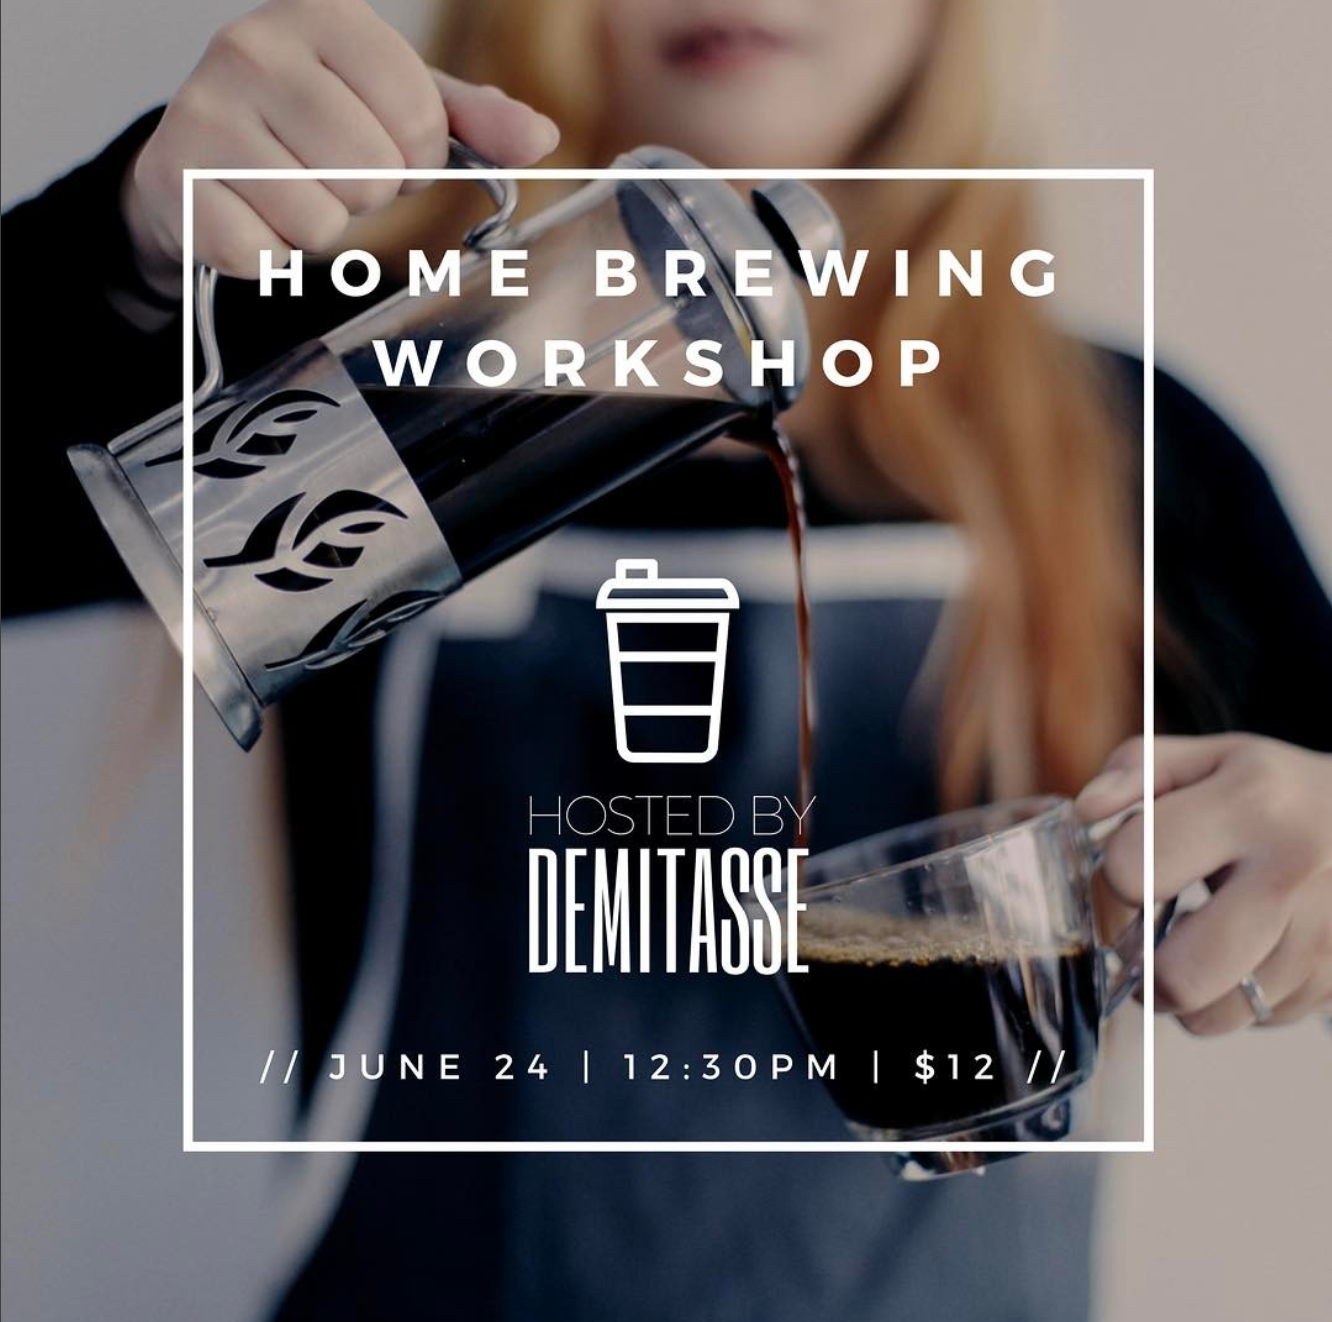 Do you wish you could brew better coffee at home? This is an introductory class focused on teaching the importance of water filtration, grinders, scales, extraction, & brew ratio.  We will spend time with small groups showing you how to properly brew on different brew methods. We will show you everything you will need to have at home to assist in making your coffee drinking experiences really amazing.  At the end of the class, you will leave with knowledge to brew coffee at home. You will also be able to purchase of any brew related equipment you use in the class! Class is about an hour in length & will be located at Cafe Demitasse in WeHo.  We look forward to spending the afternoon with you and teaching you these amazing brew methods!  RSVP  here .